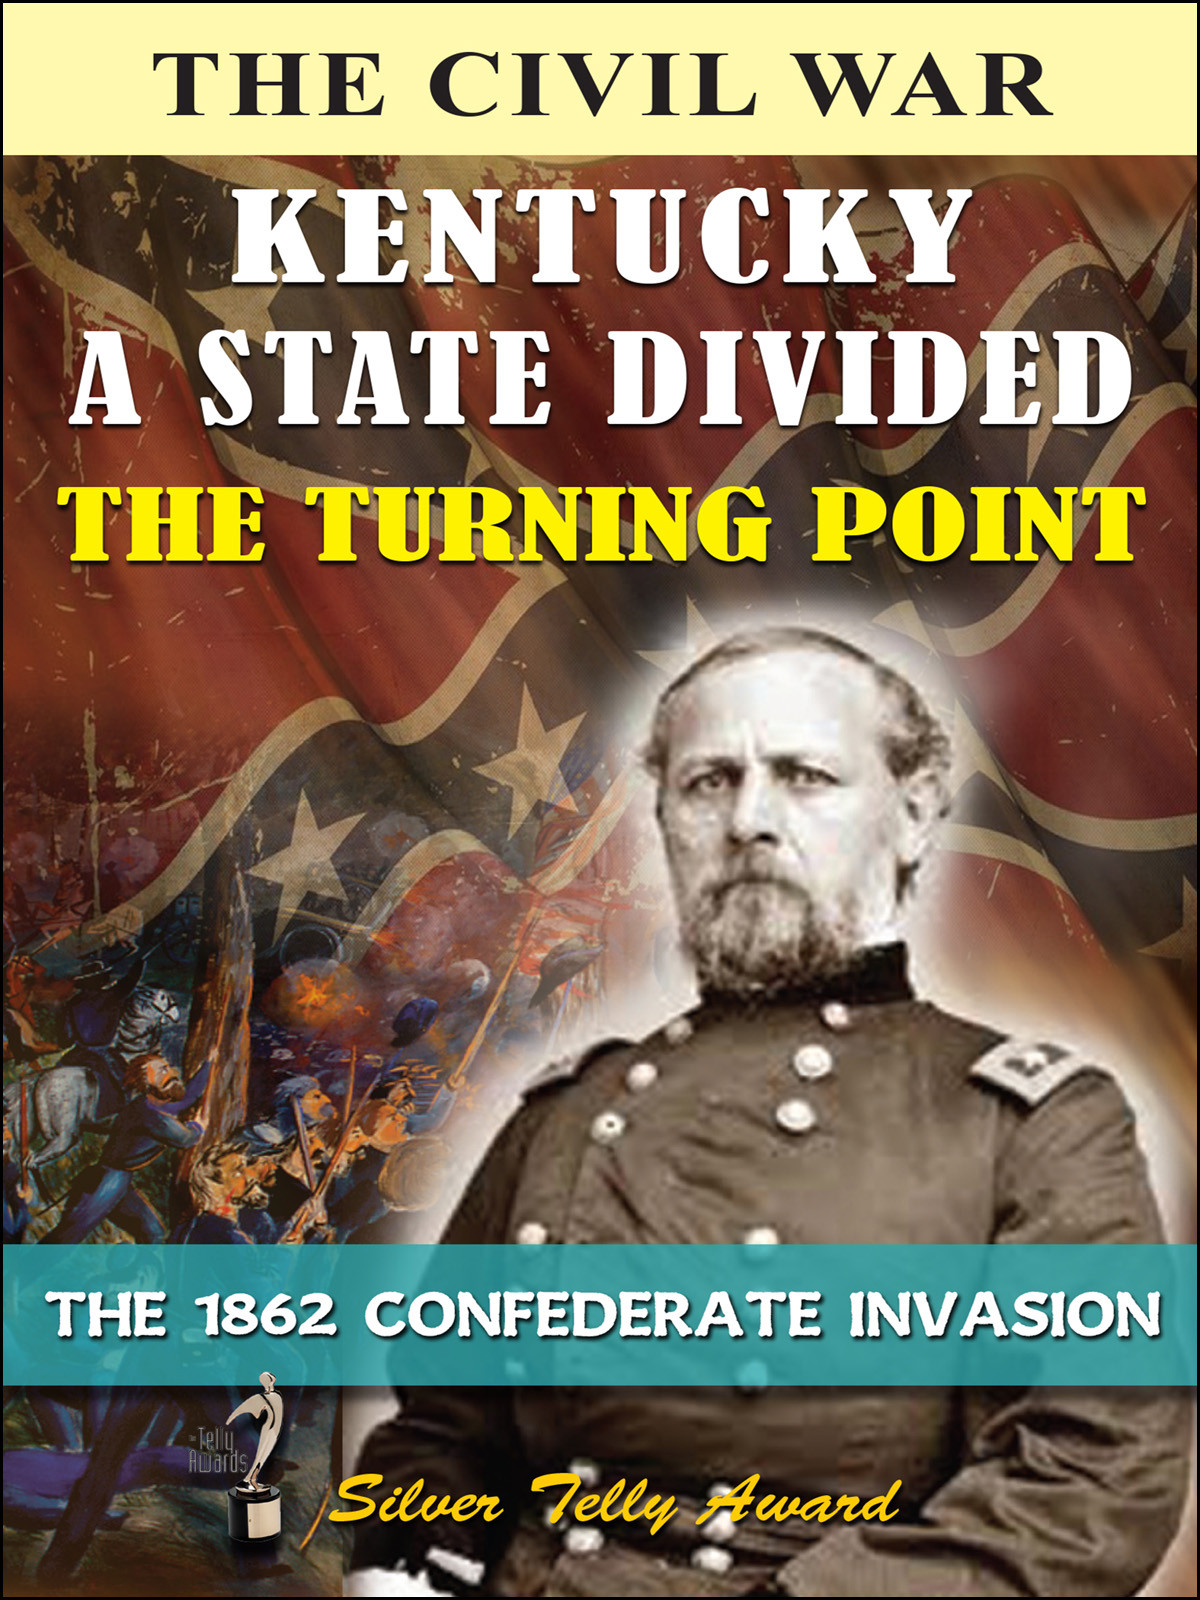 L4836 - Kentucky a State Divided The Turning Point